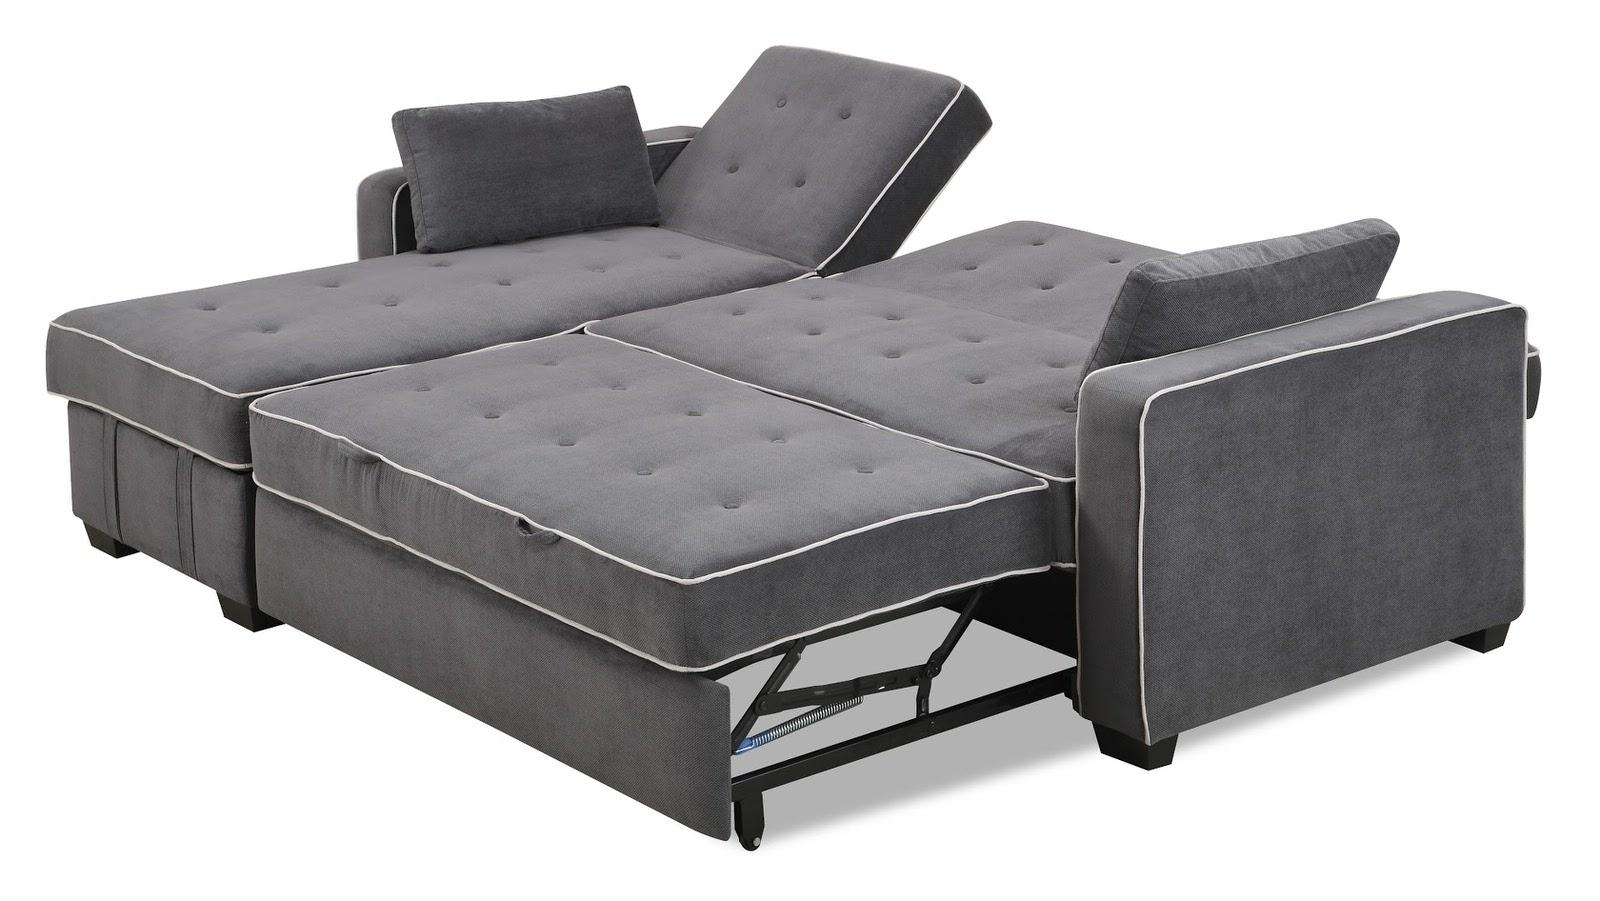 king sofa beds 3 seater recliner 20 ideas of size